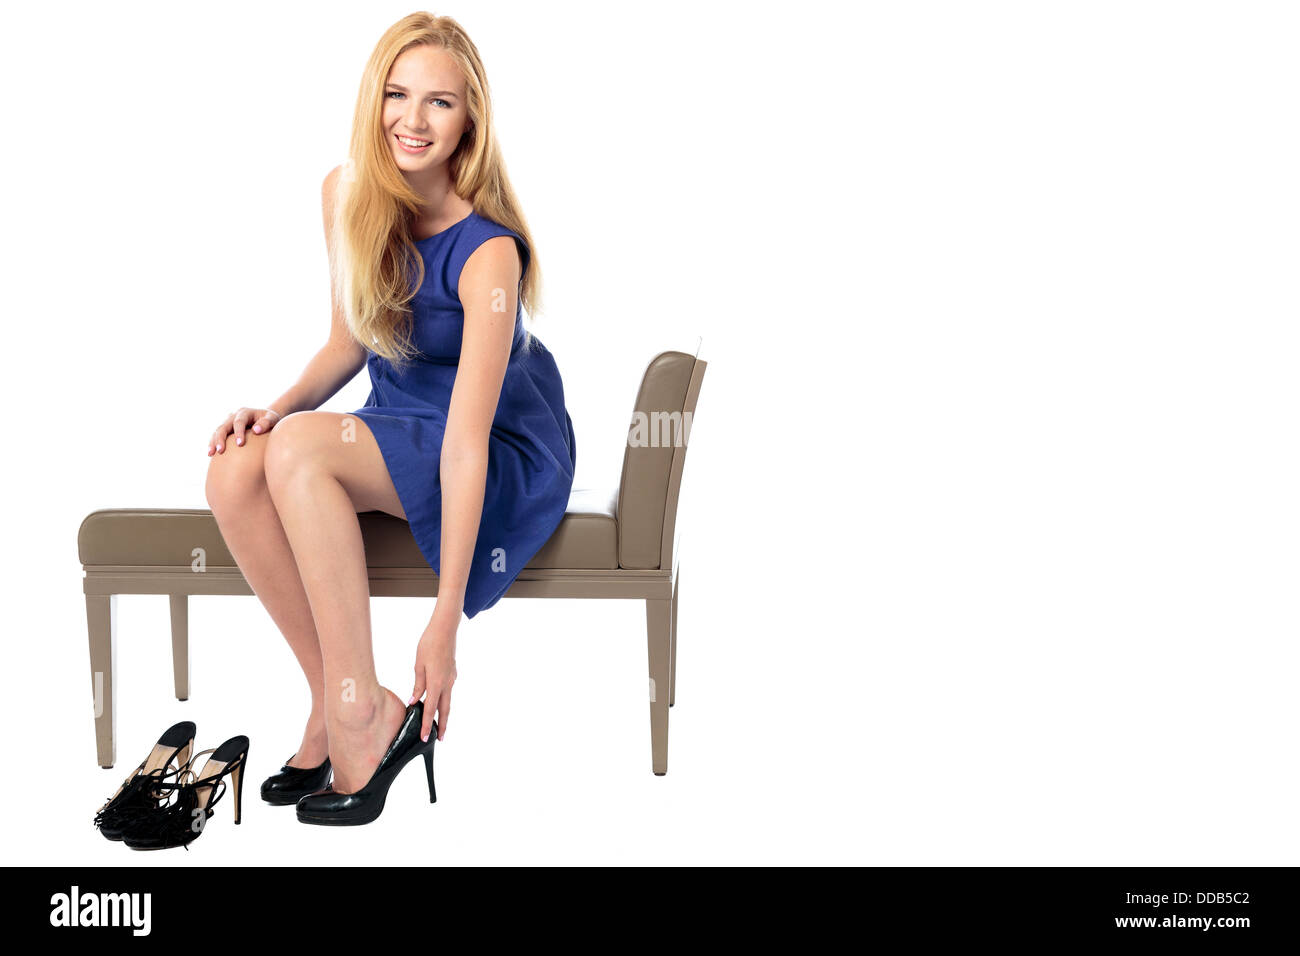 Fashionable beautiful young woman seated on a bench changing her high heeled shoes, isolated on white - Stock Image